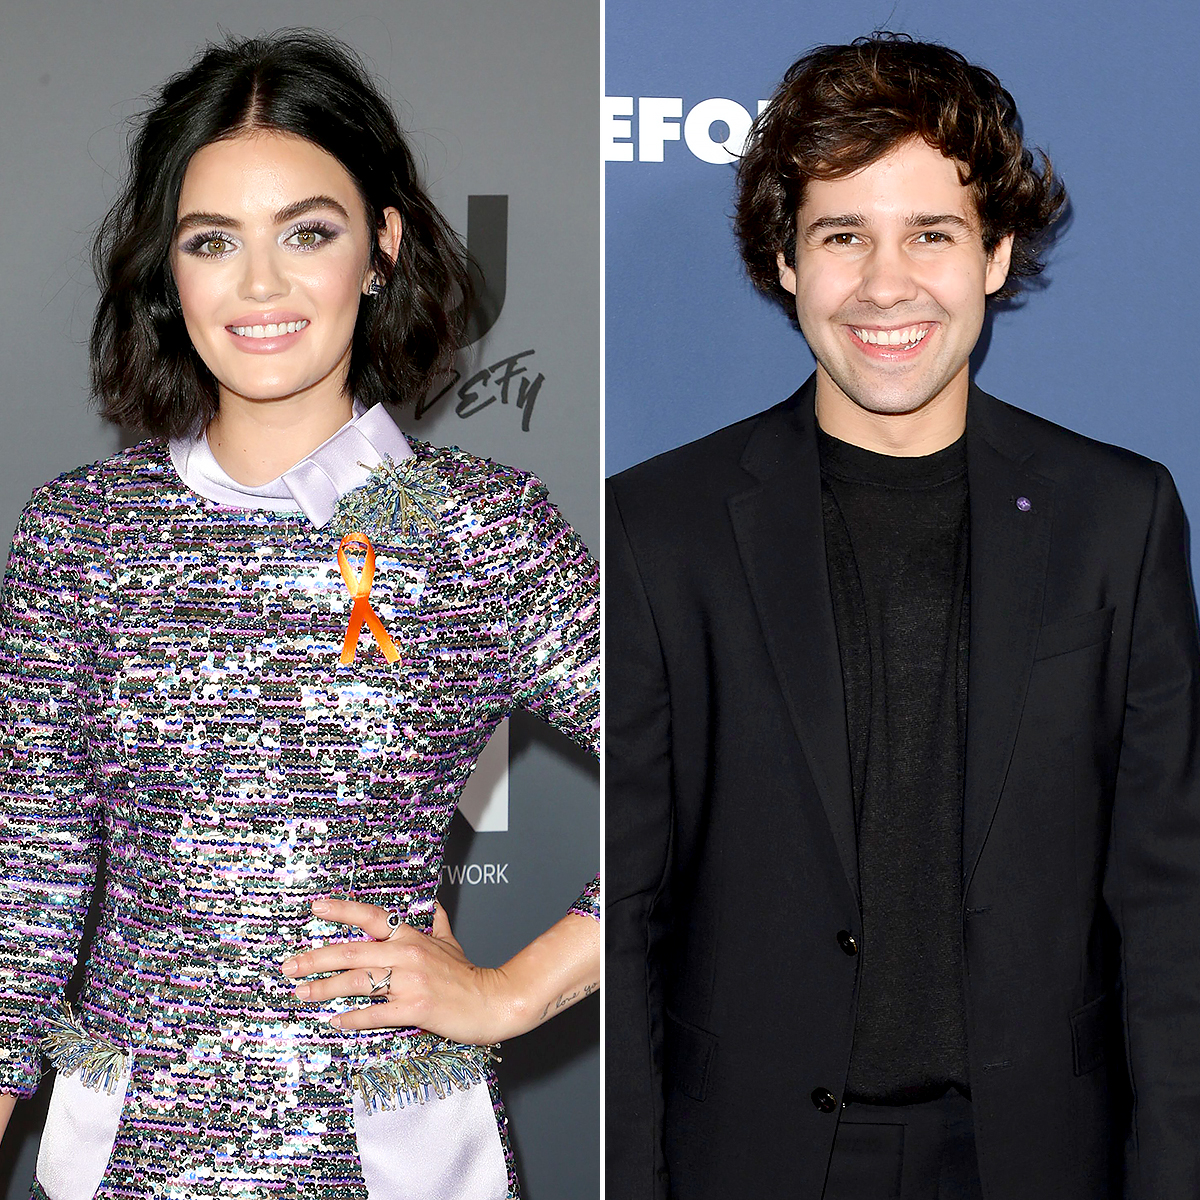 Lucy-Hale-and-David-Dobrik-will-host-the-2019-Teen-Choice-Awards